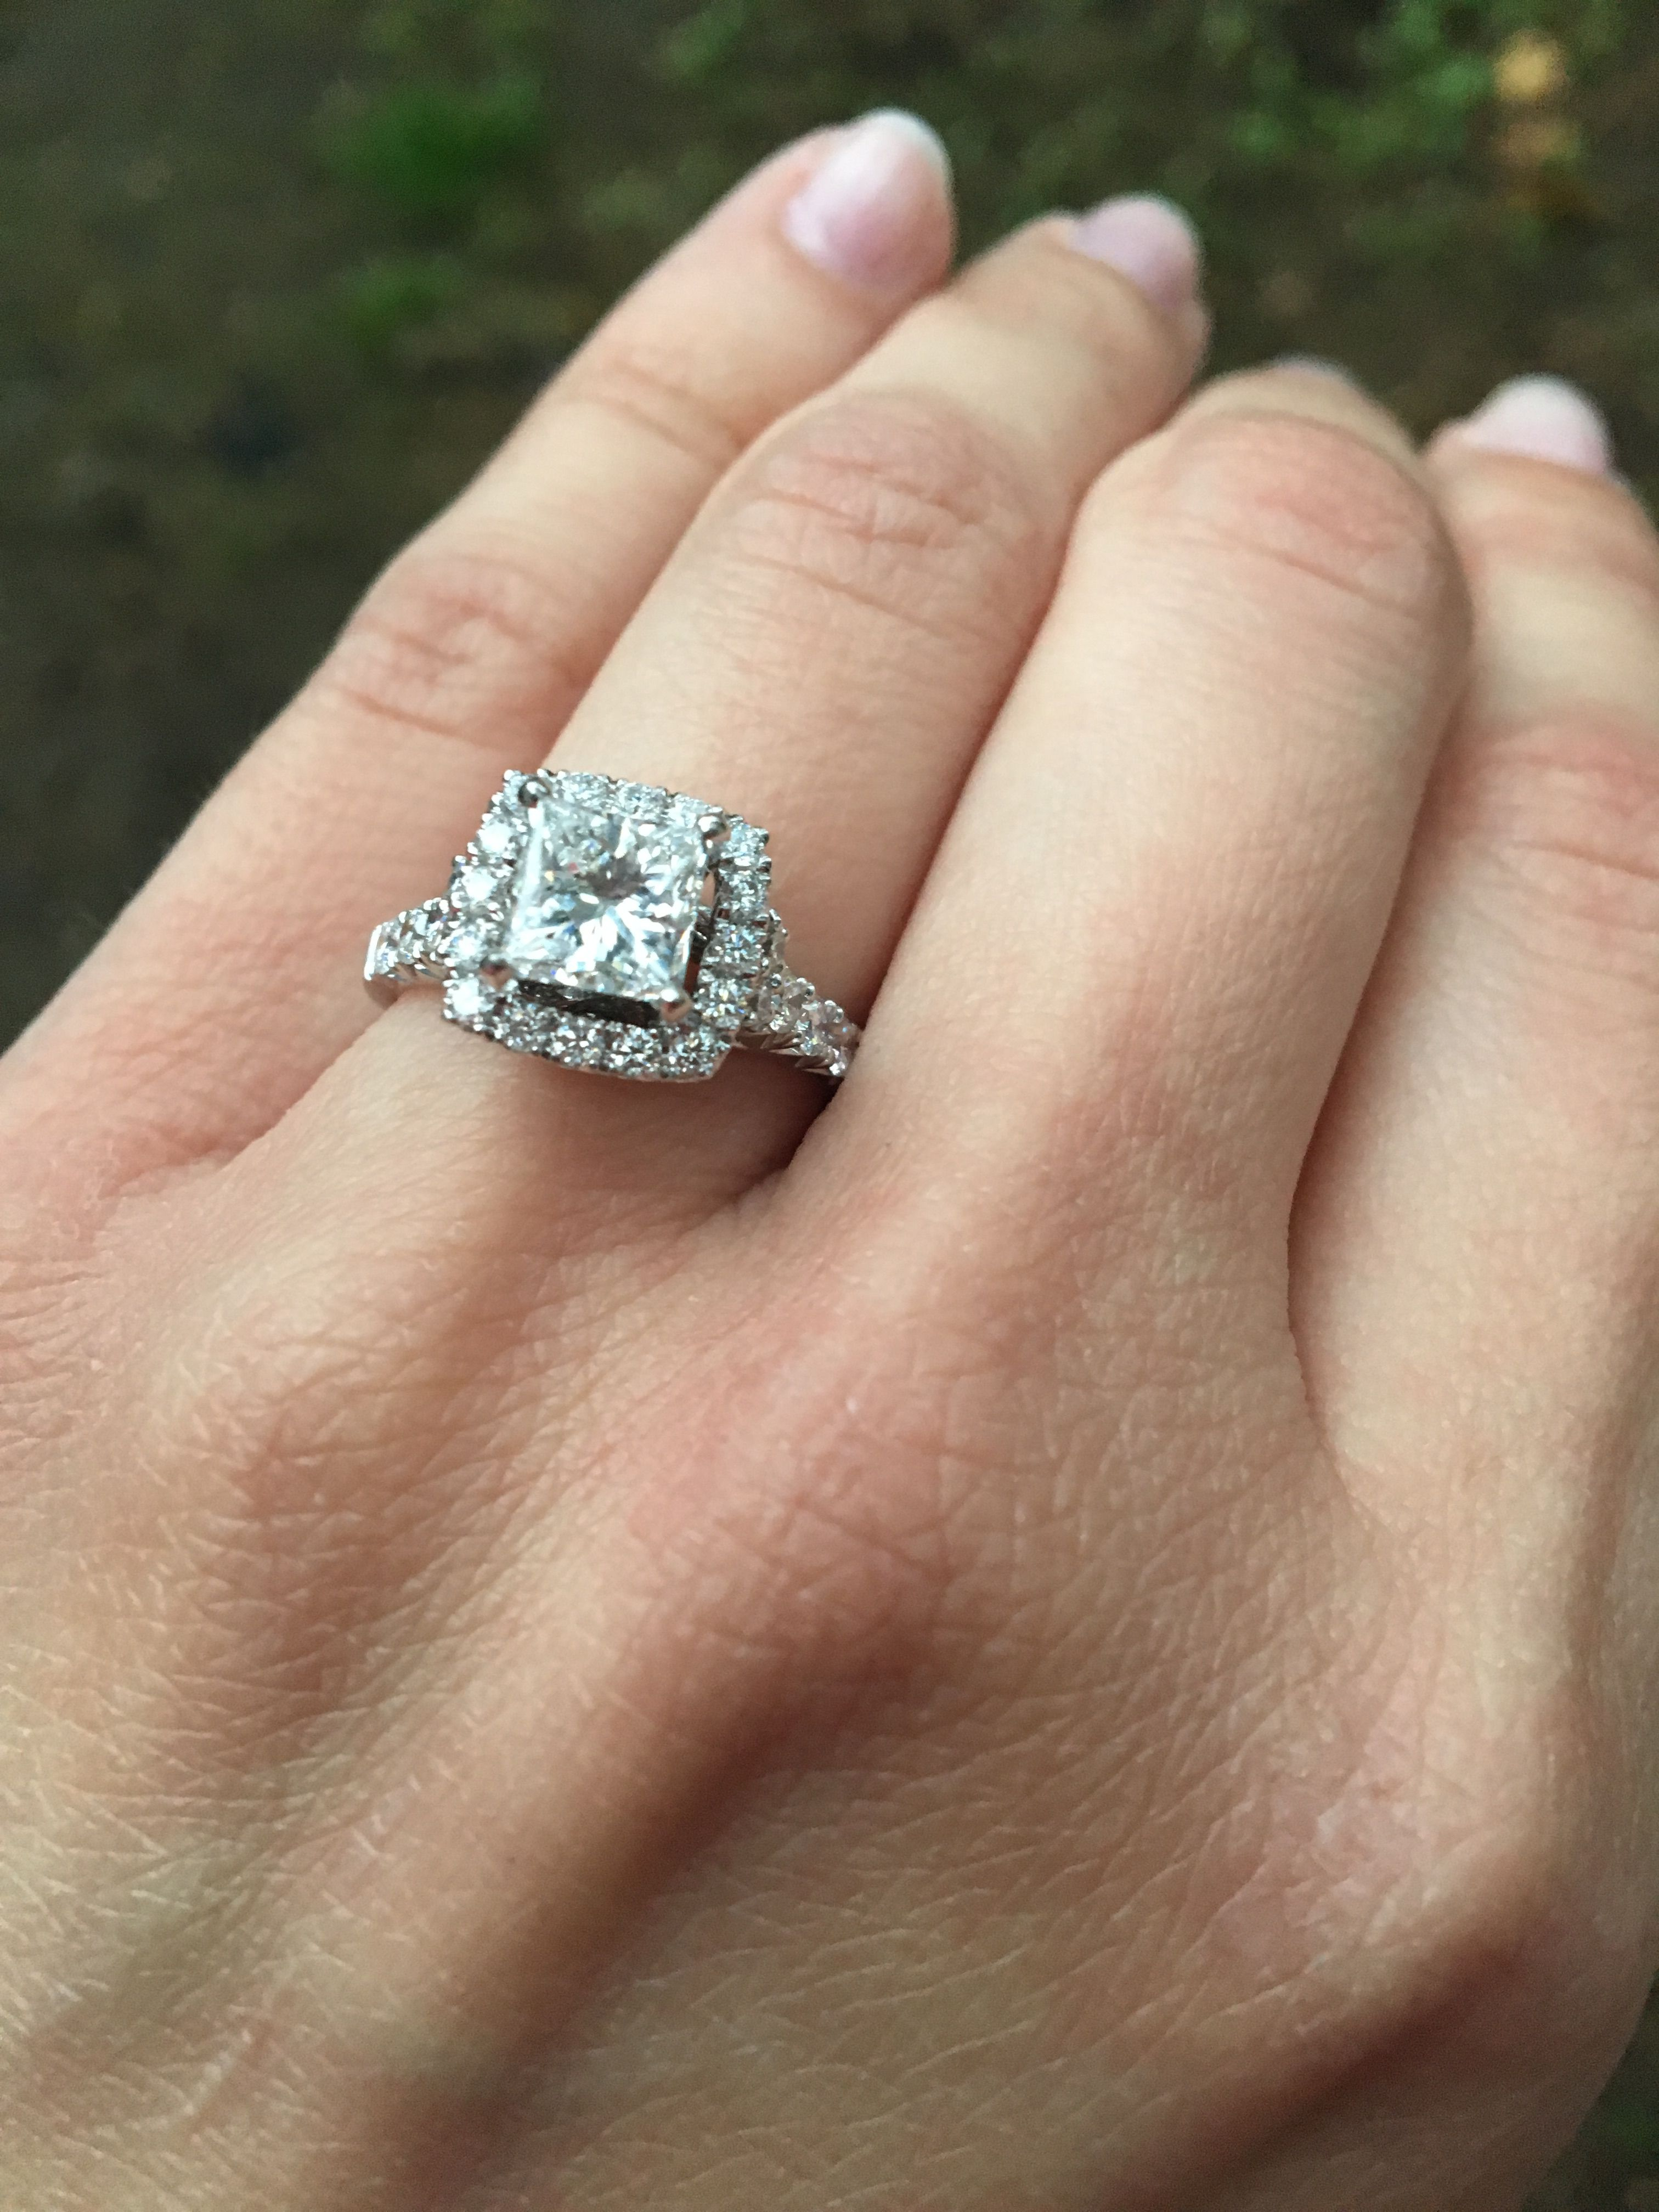 Jane our commercial specialist recently got engaged Were very